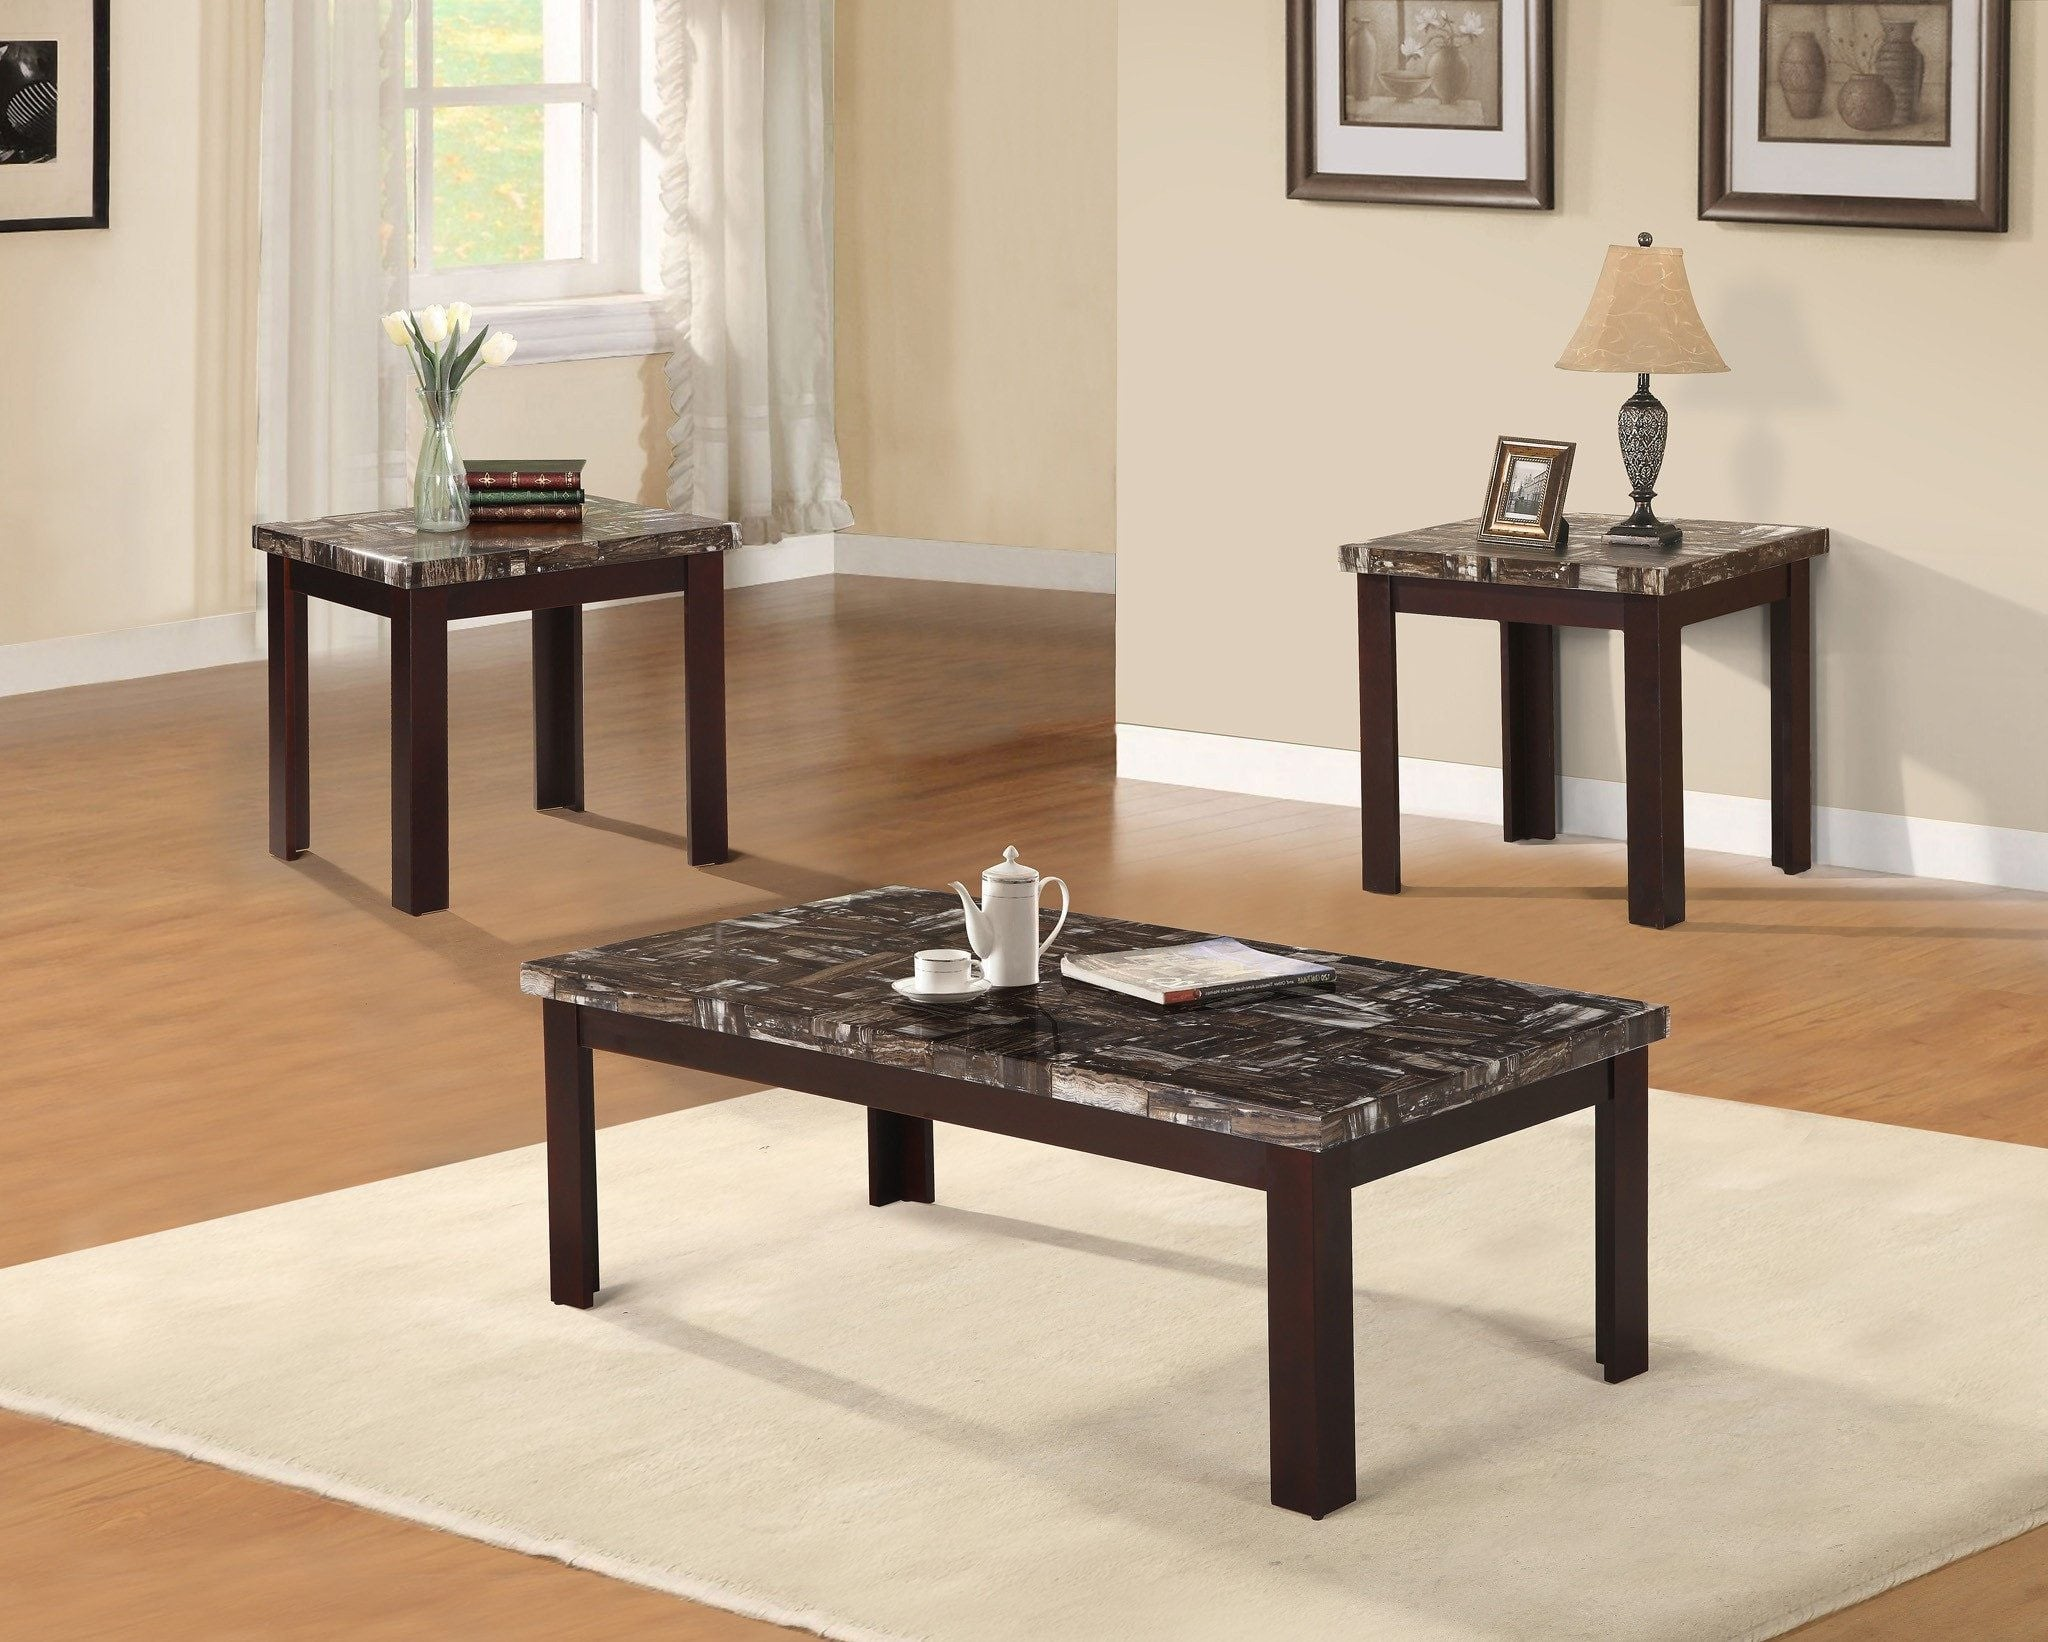 Coffee table set 3 pcs set pacific imports inc larimar espresso coffee table set 3 pcs set 1c 2e furnlander geotapseo Choice Image